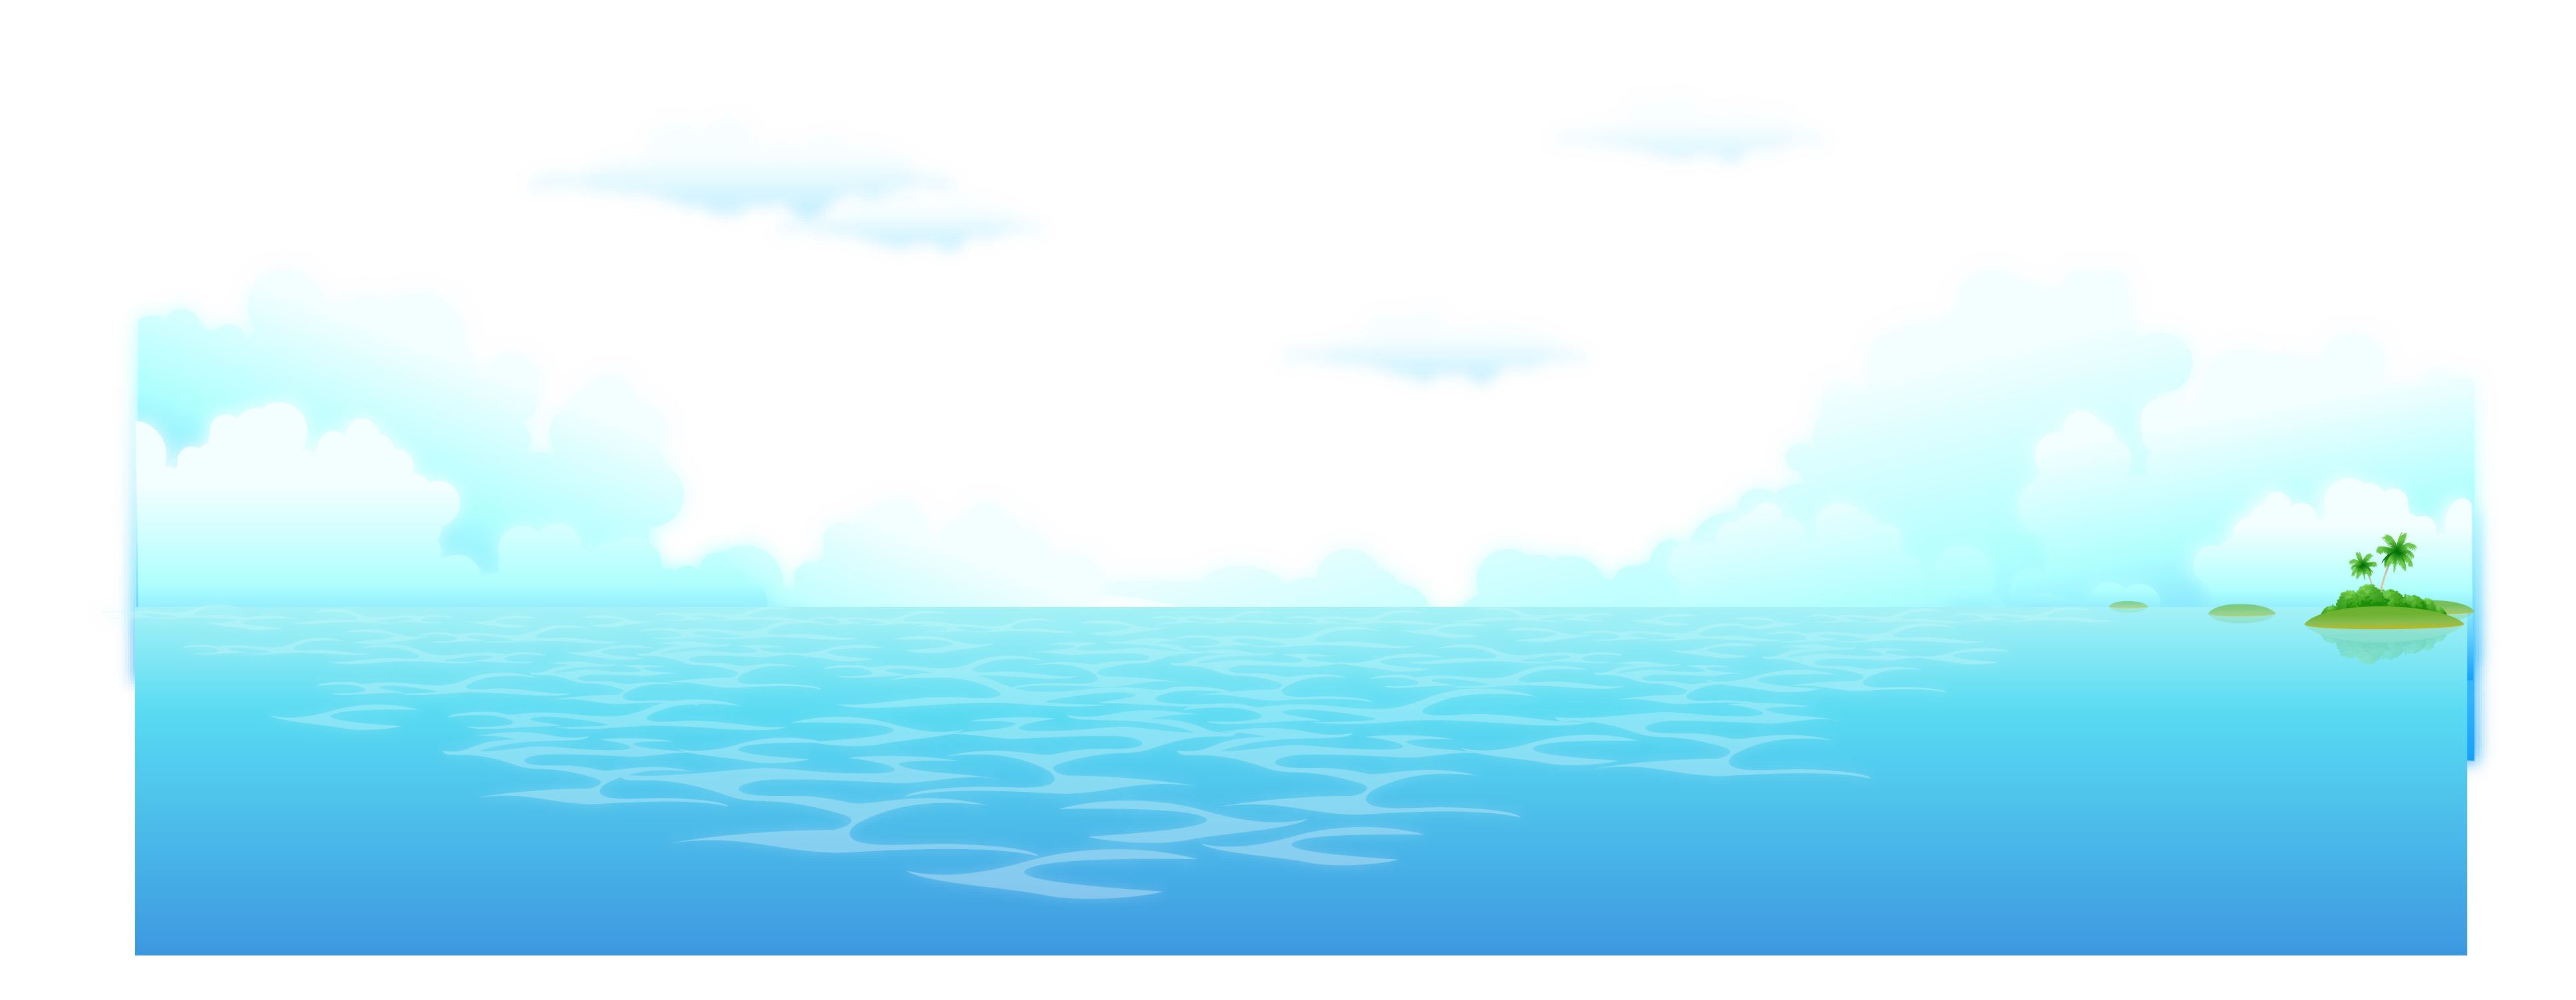 Ocean background png. Fresh vector transprent free